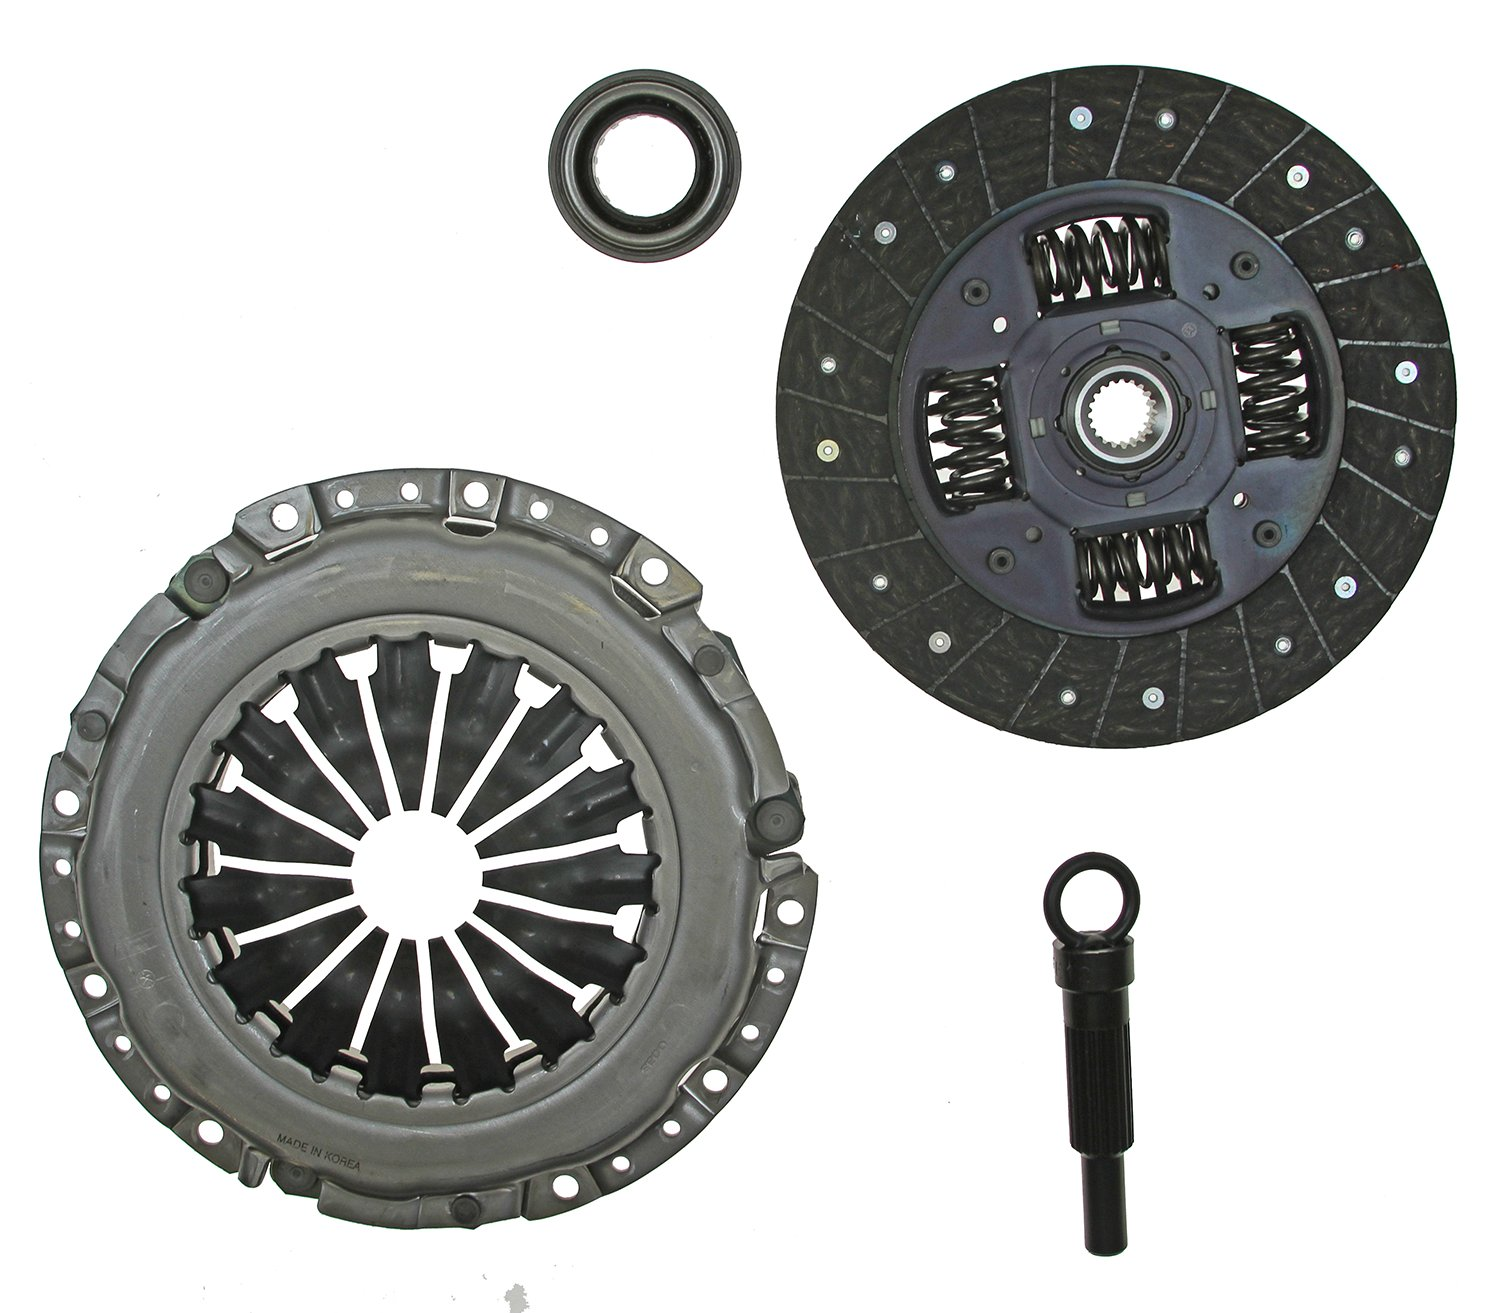 Hyundai Elantra: Clutch Cover And Disc. Repair procedures